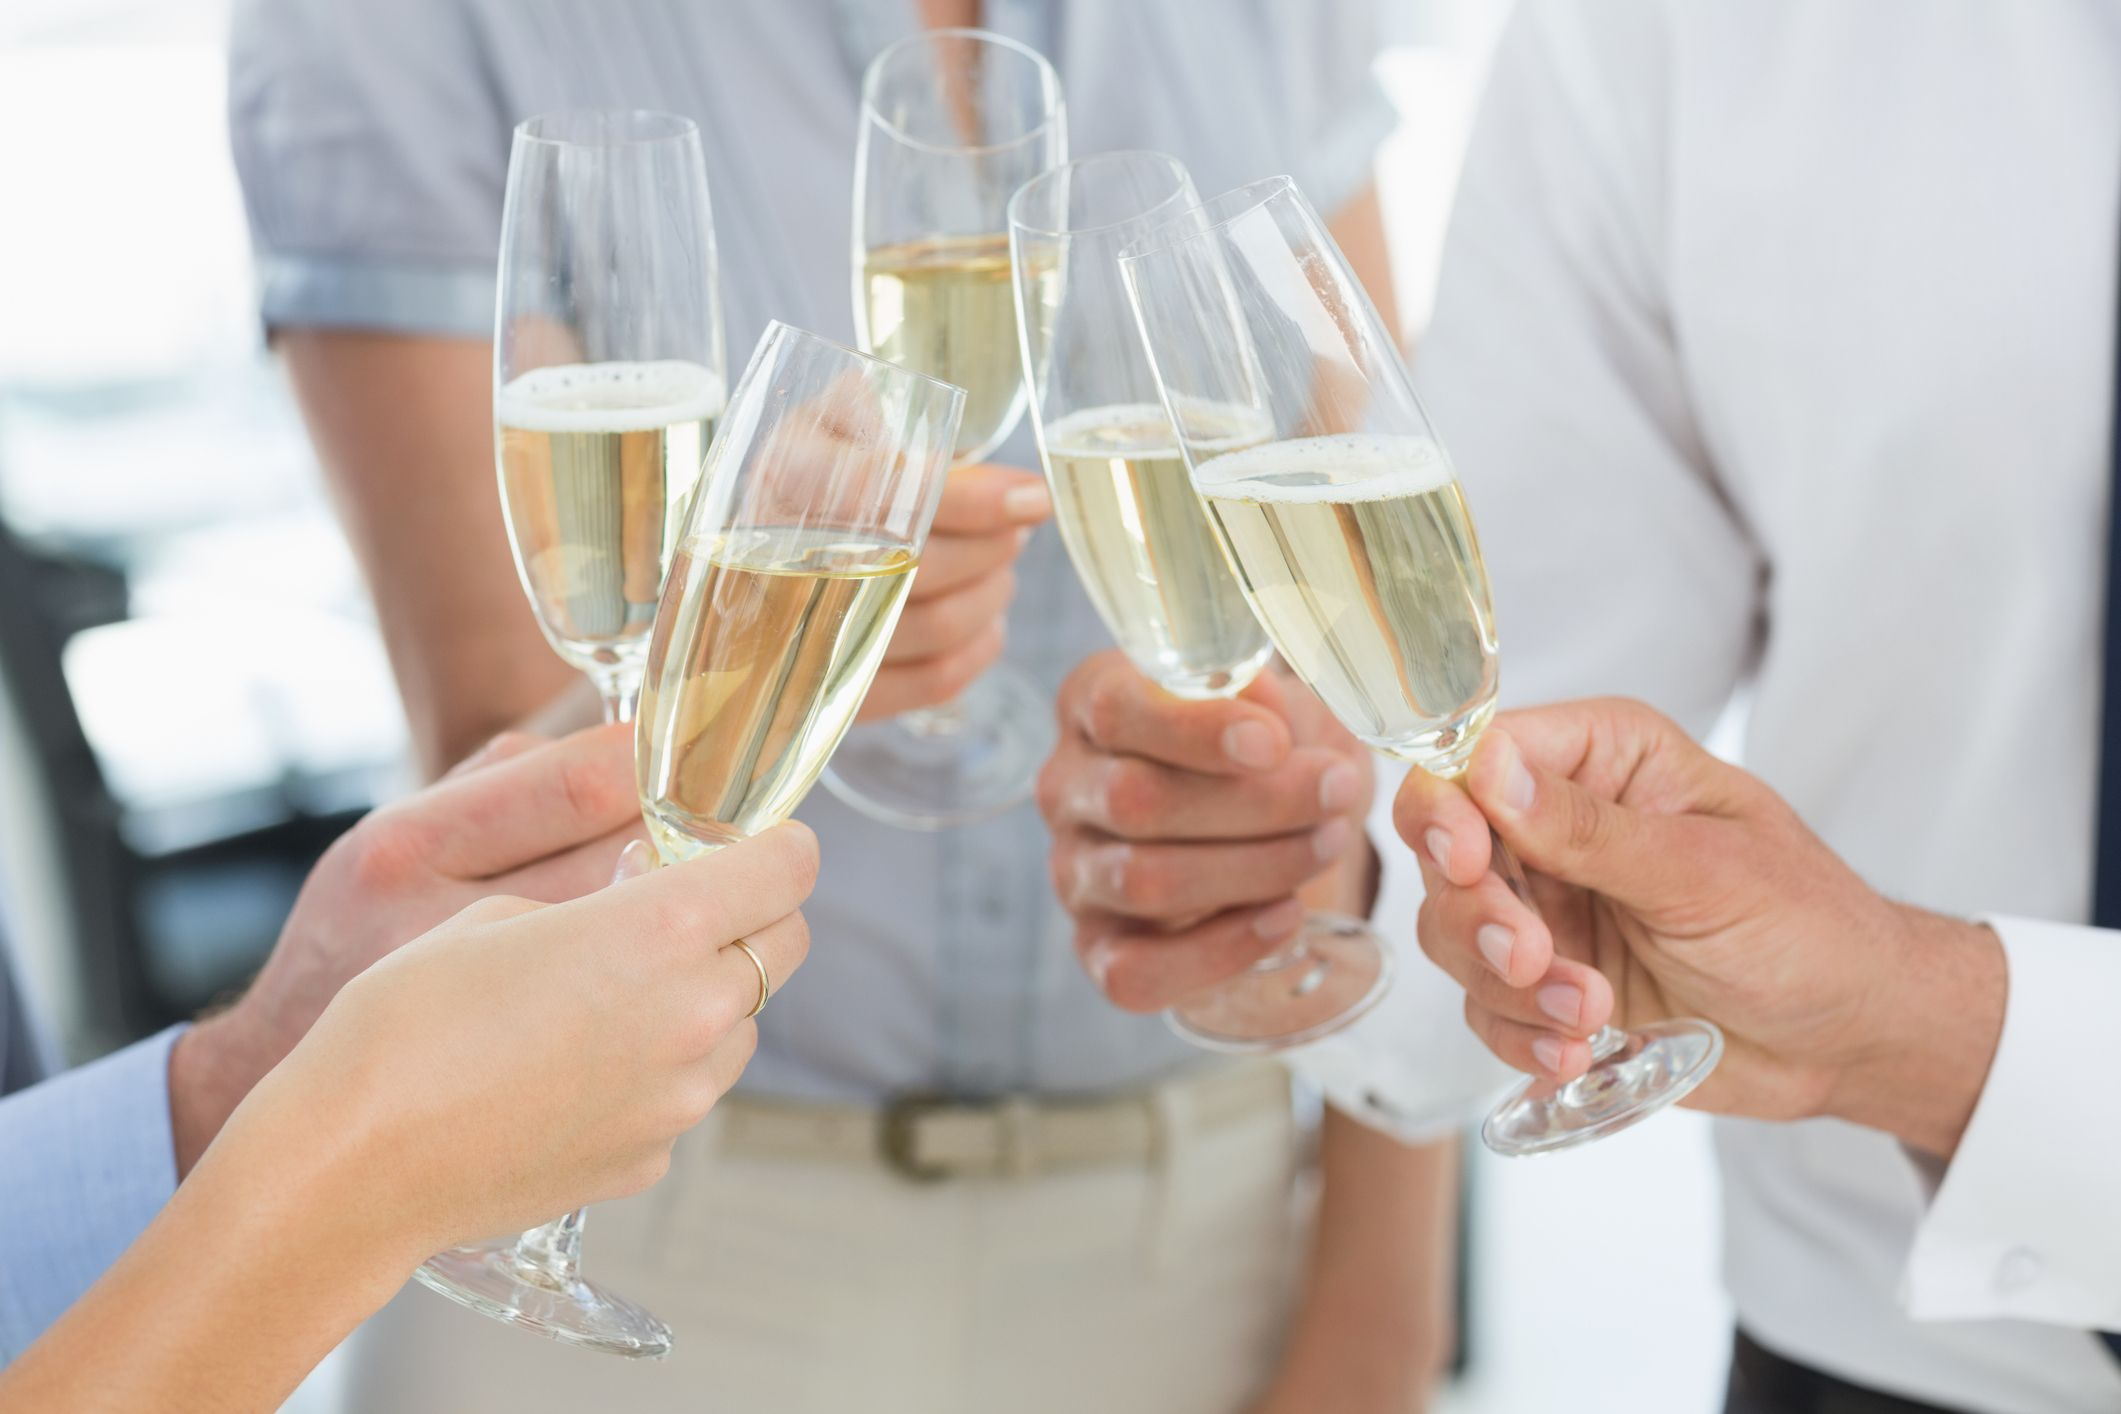 Hands toasting with champagne (Thinkstock/PA)